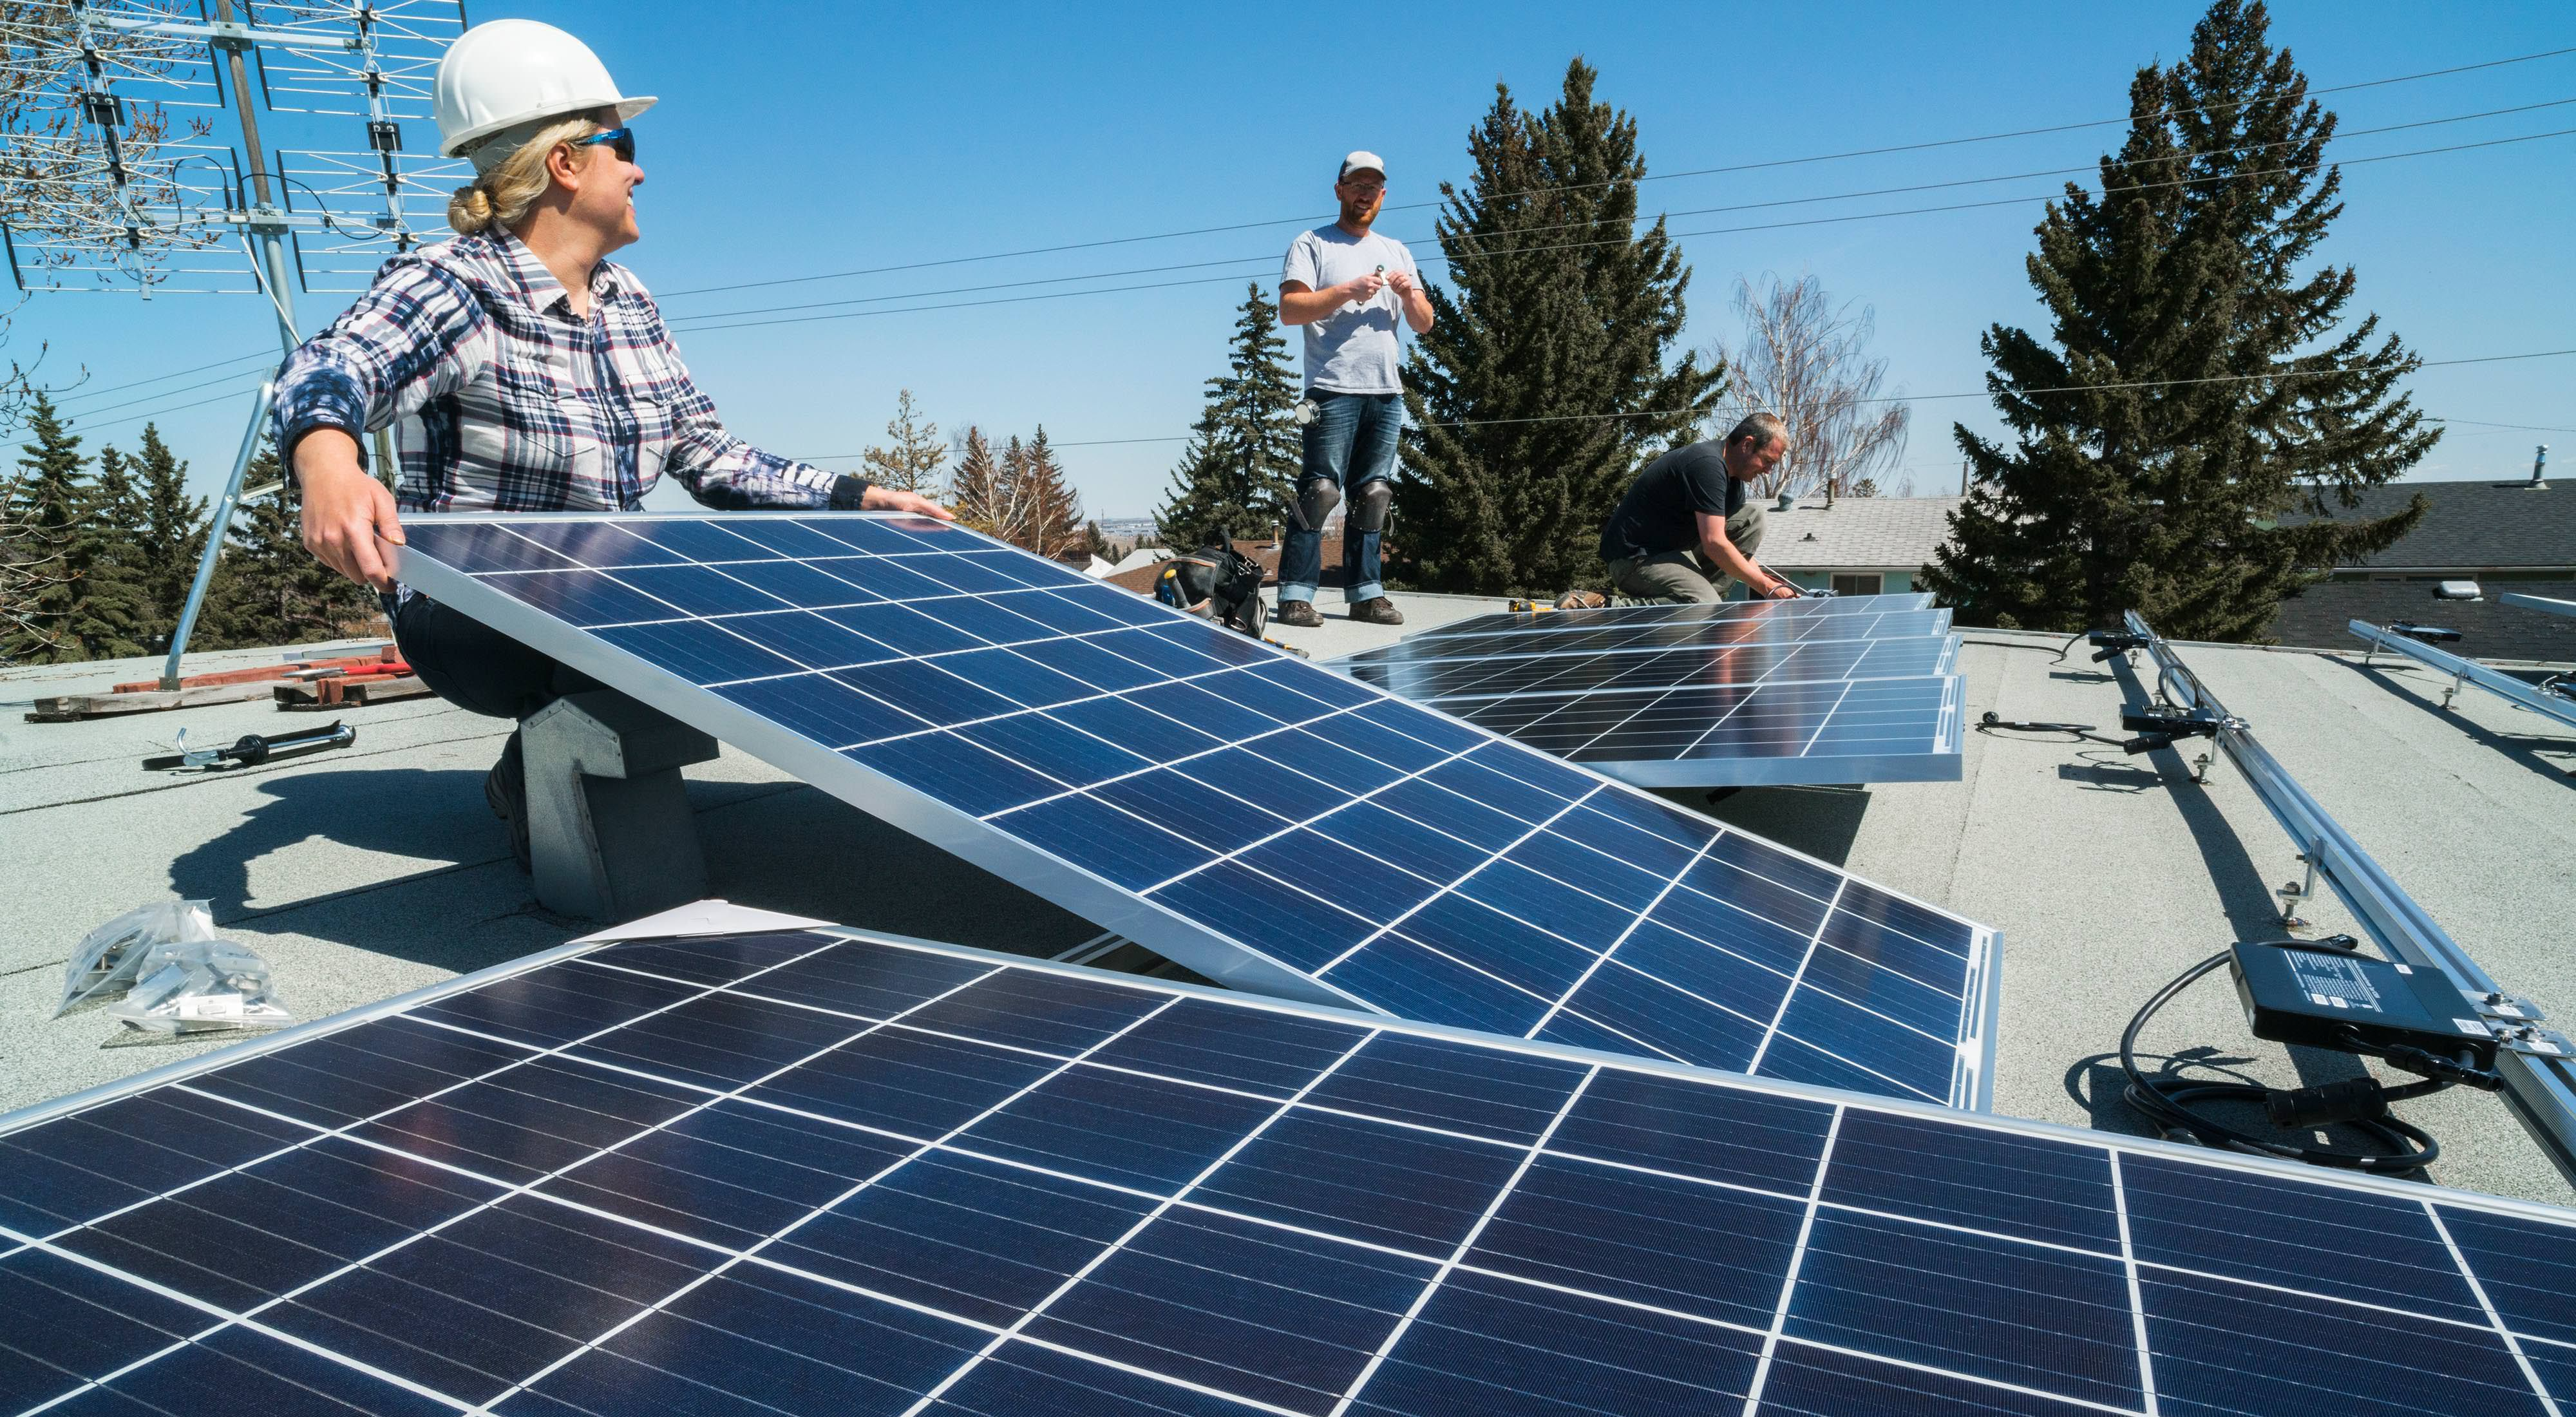 Workers installing solar panels on a residential homes roof.